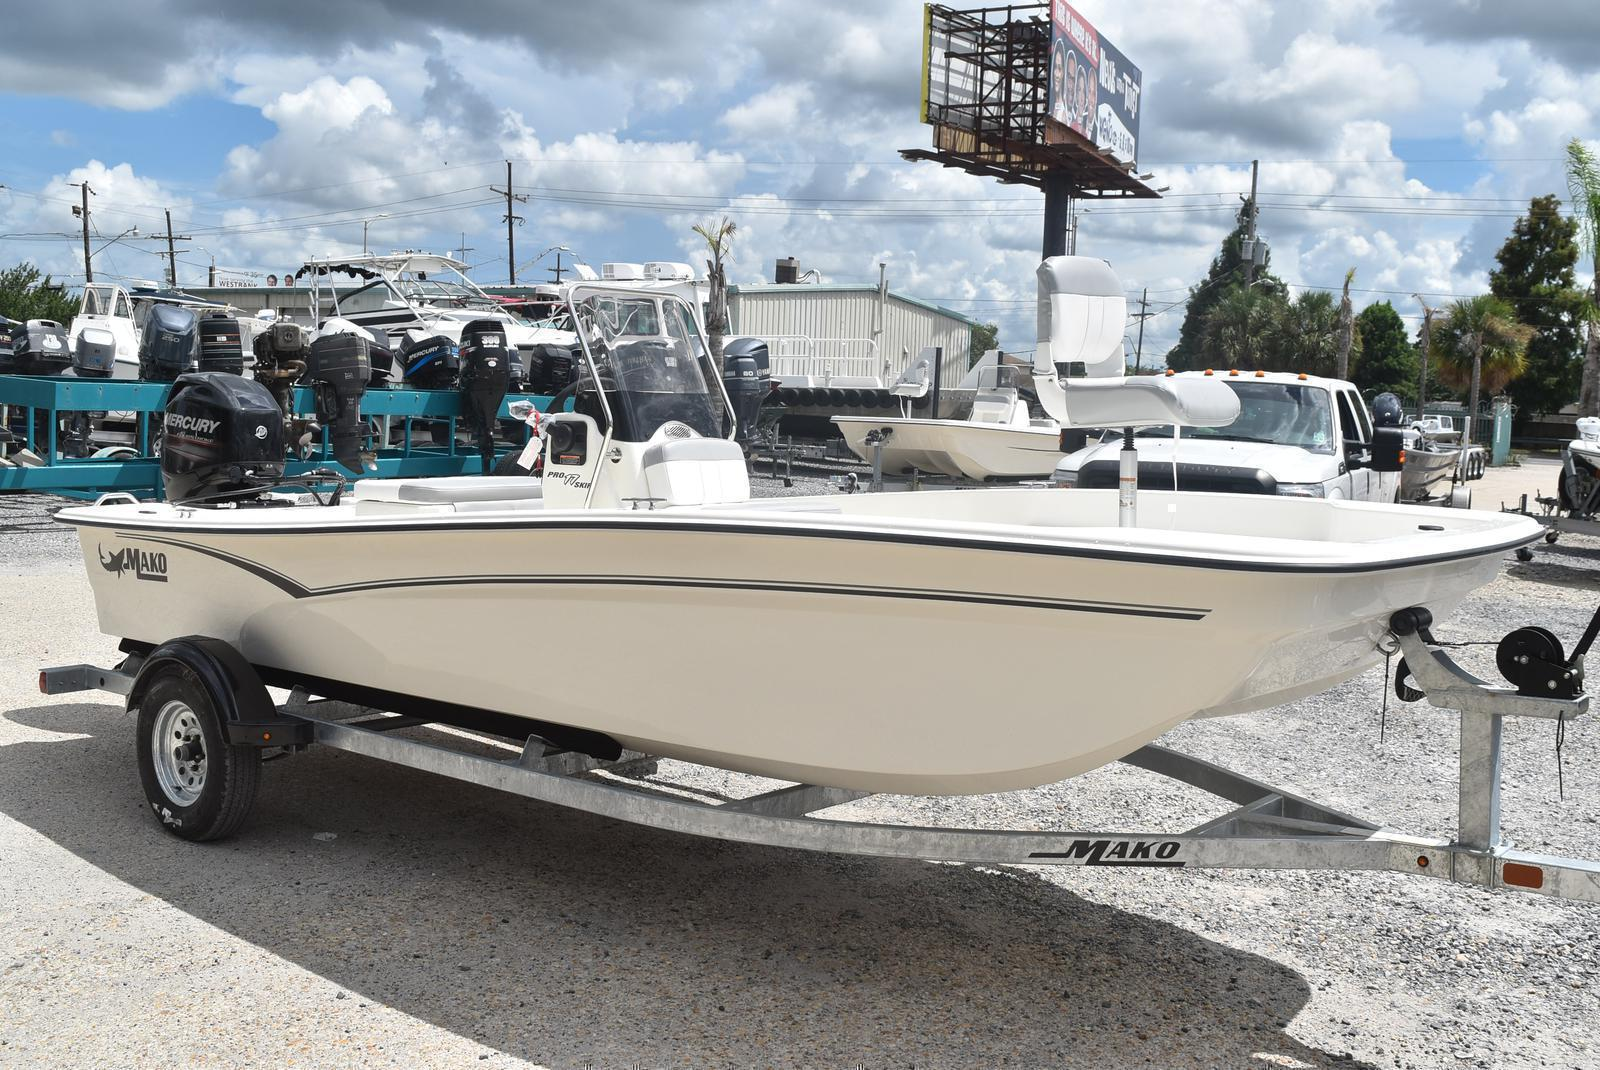 2020 Mako boat for sale, model of the boat is Pro Skiff 17, 75 ELPT & Image # 626 of 702